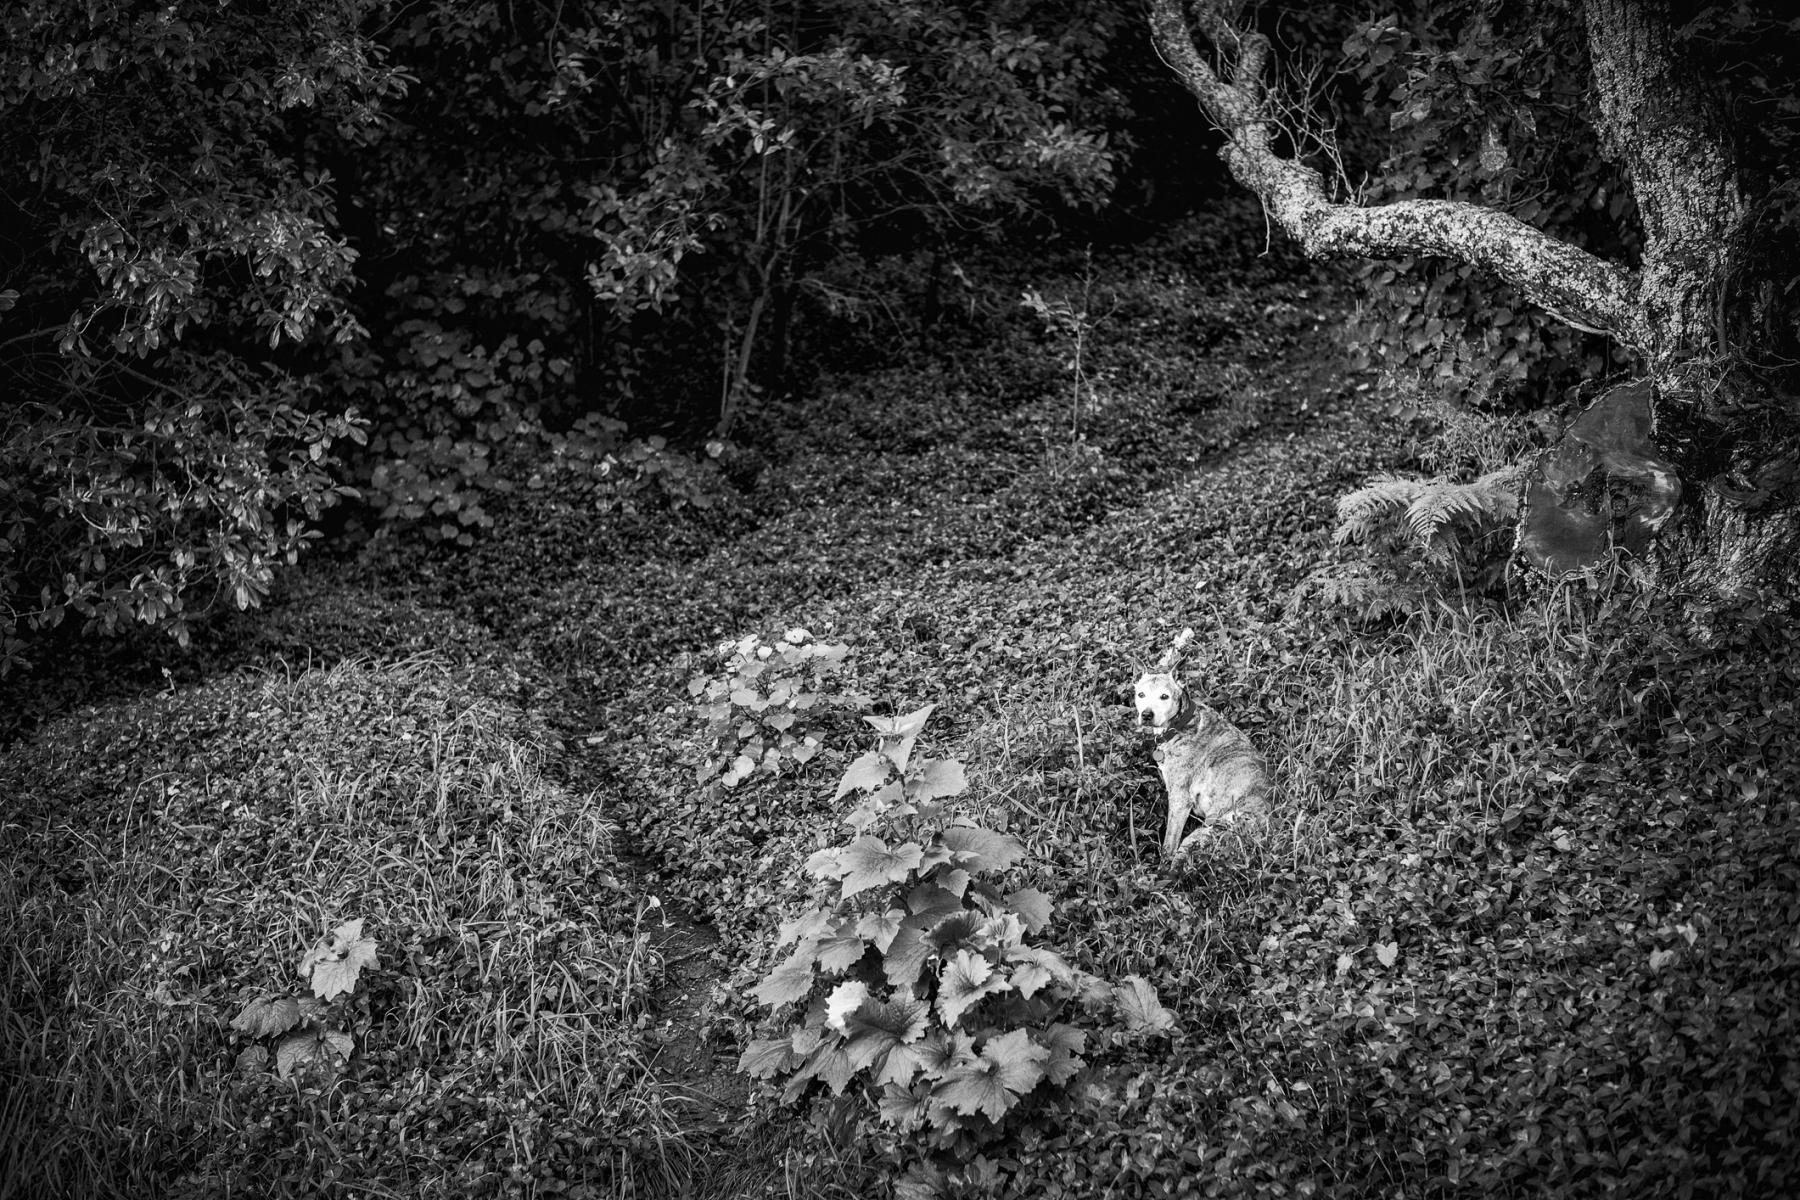 Dog in Forest, Family of Dog.  Apologies to Mr. Bullock, Auckland : street & stories : TIMOTHY FLOYD PHOTOGRAPHER, NATURE PHOTOGRAPHY, PHOTO ESSAYS, PHOTOJOURNALISM